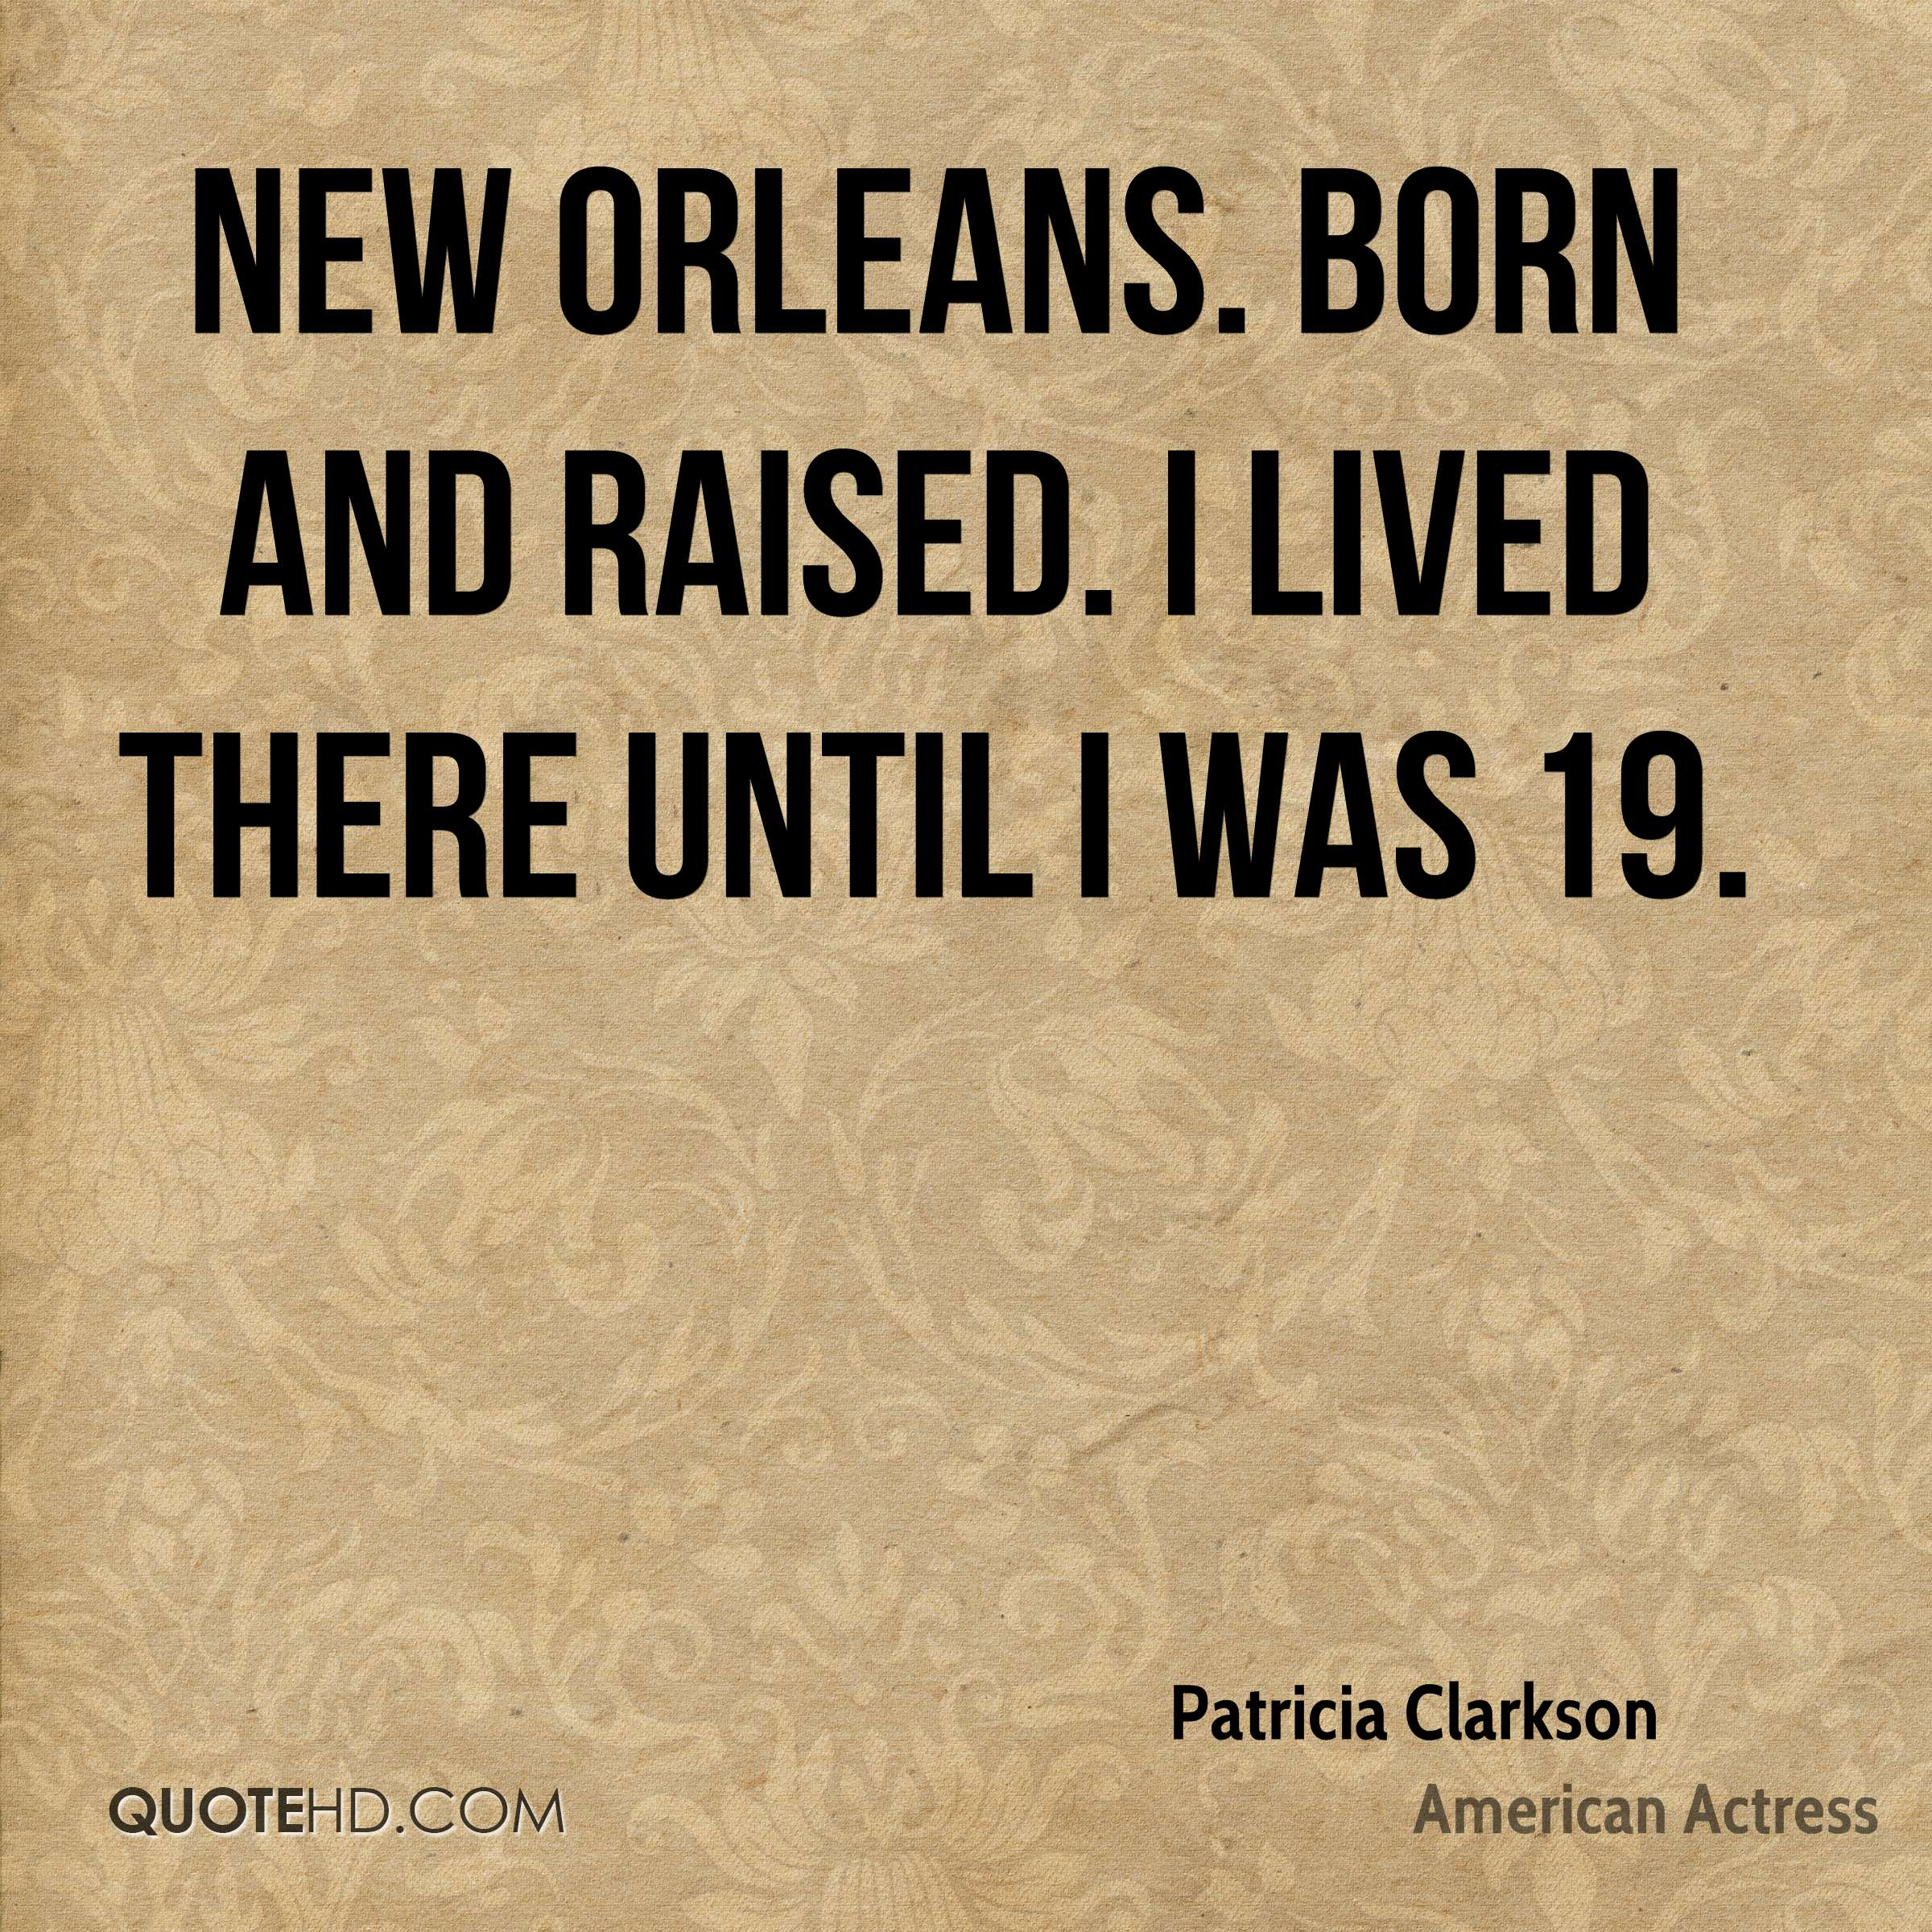 New Orleans. Born and raised. I lived there until I was 19.